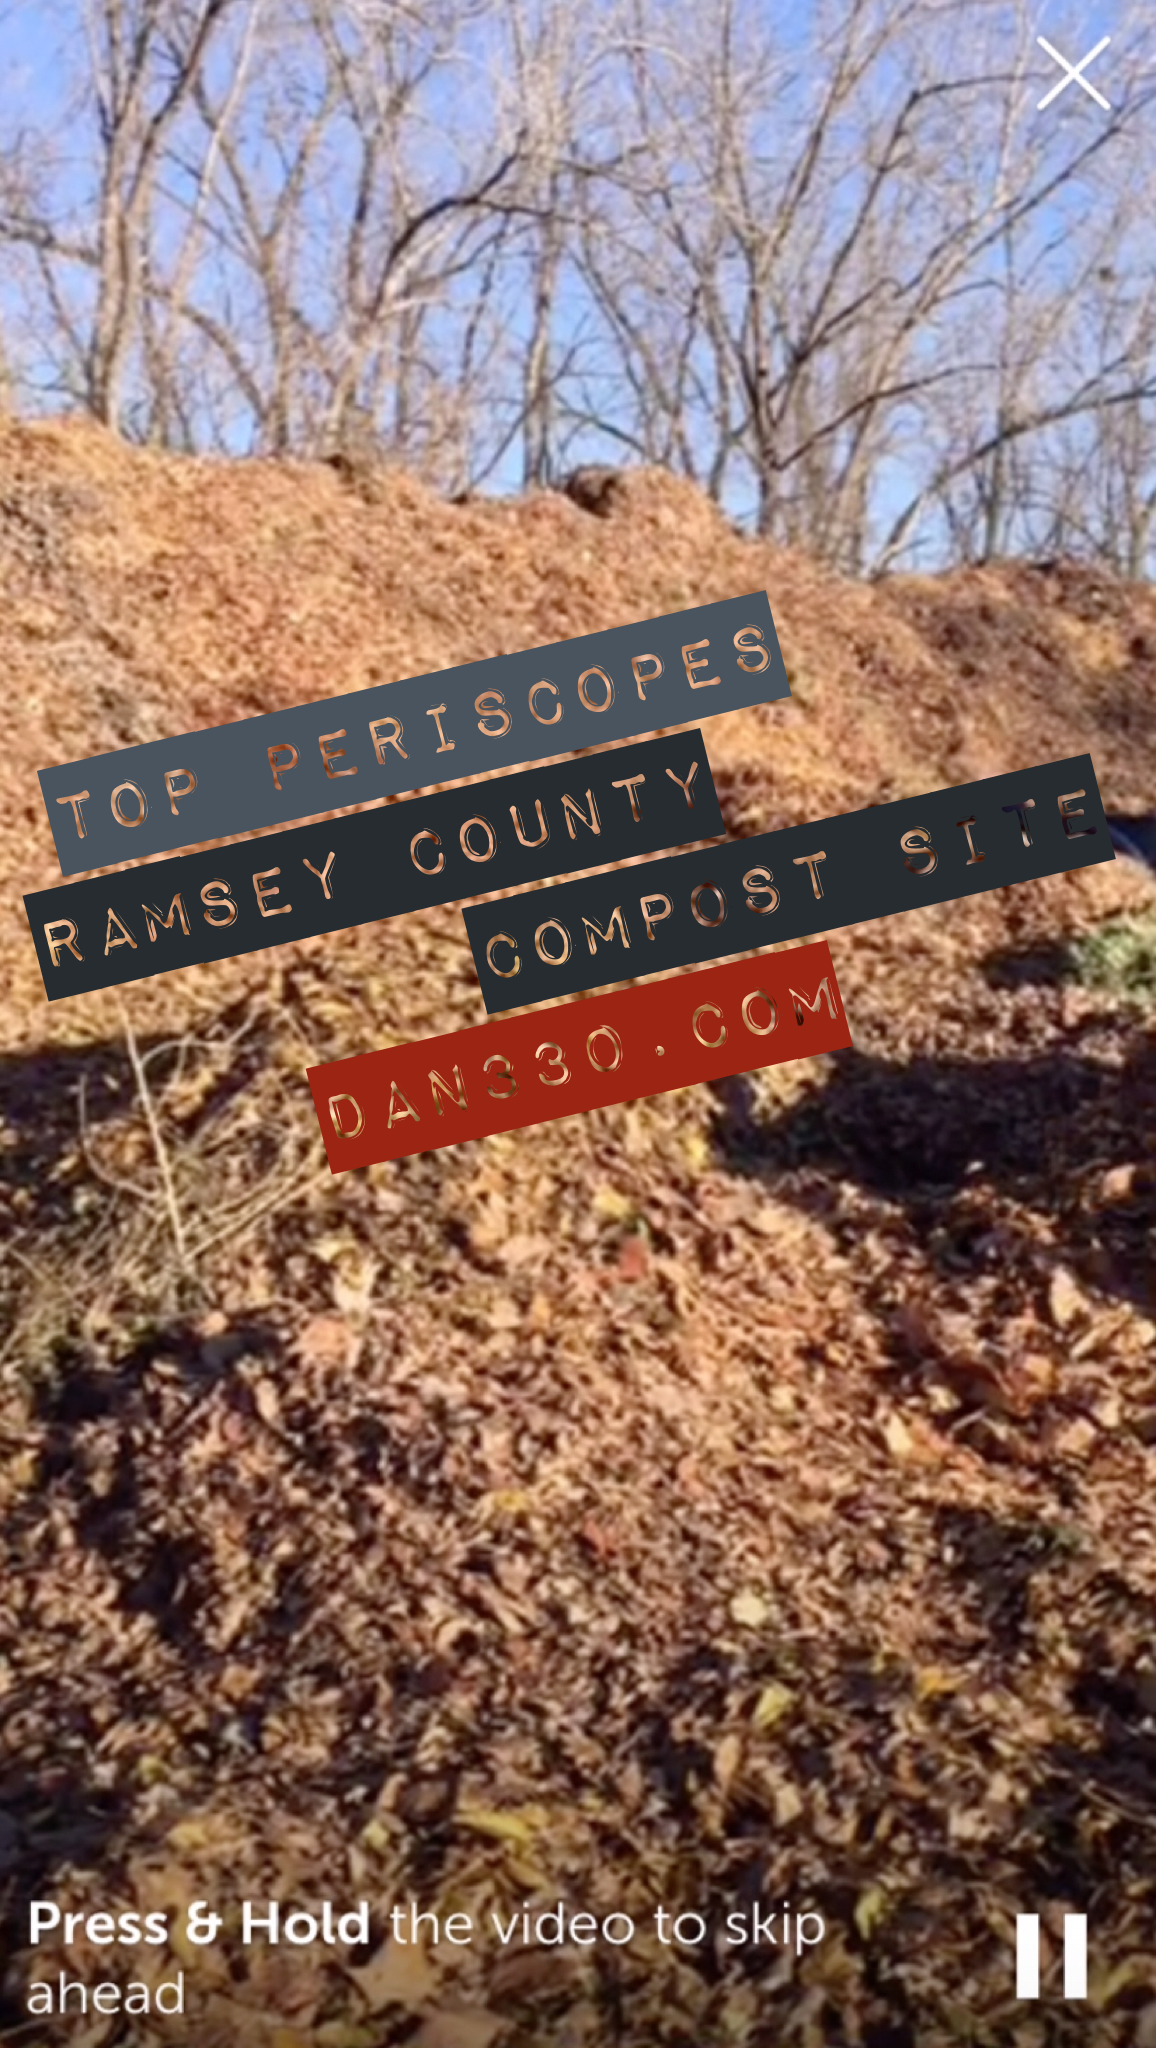 ramsey county compost site